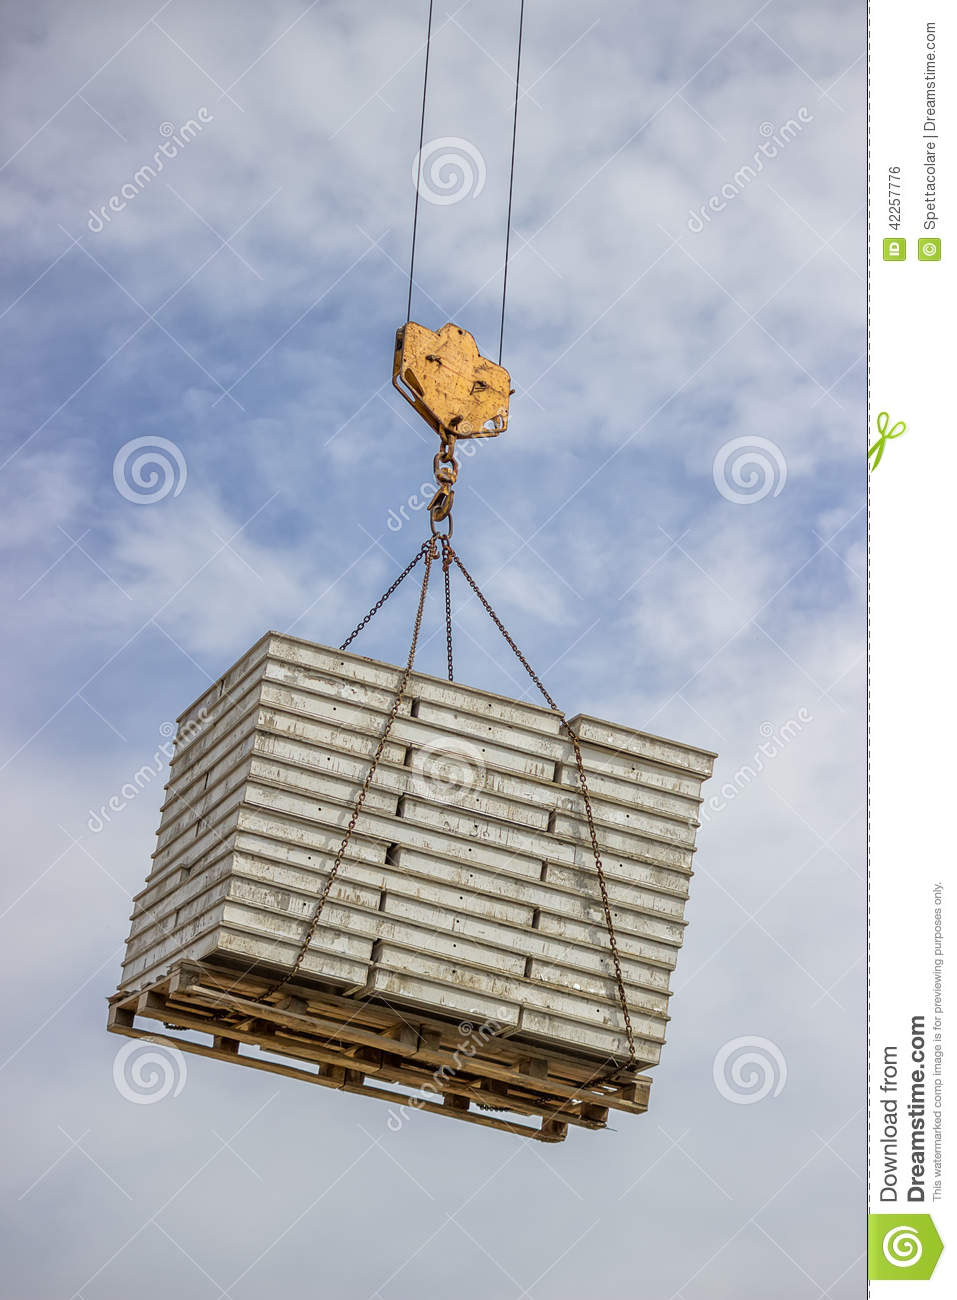 Lifting Pallet With Formwork Elements By Crane Stock Photo